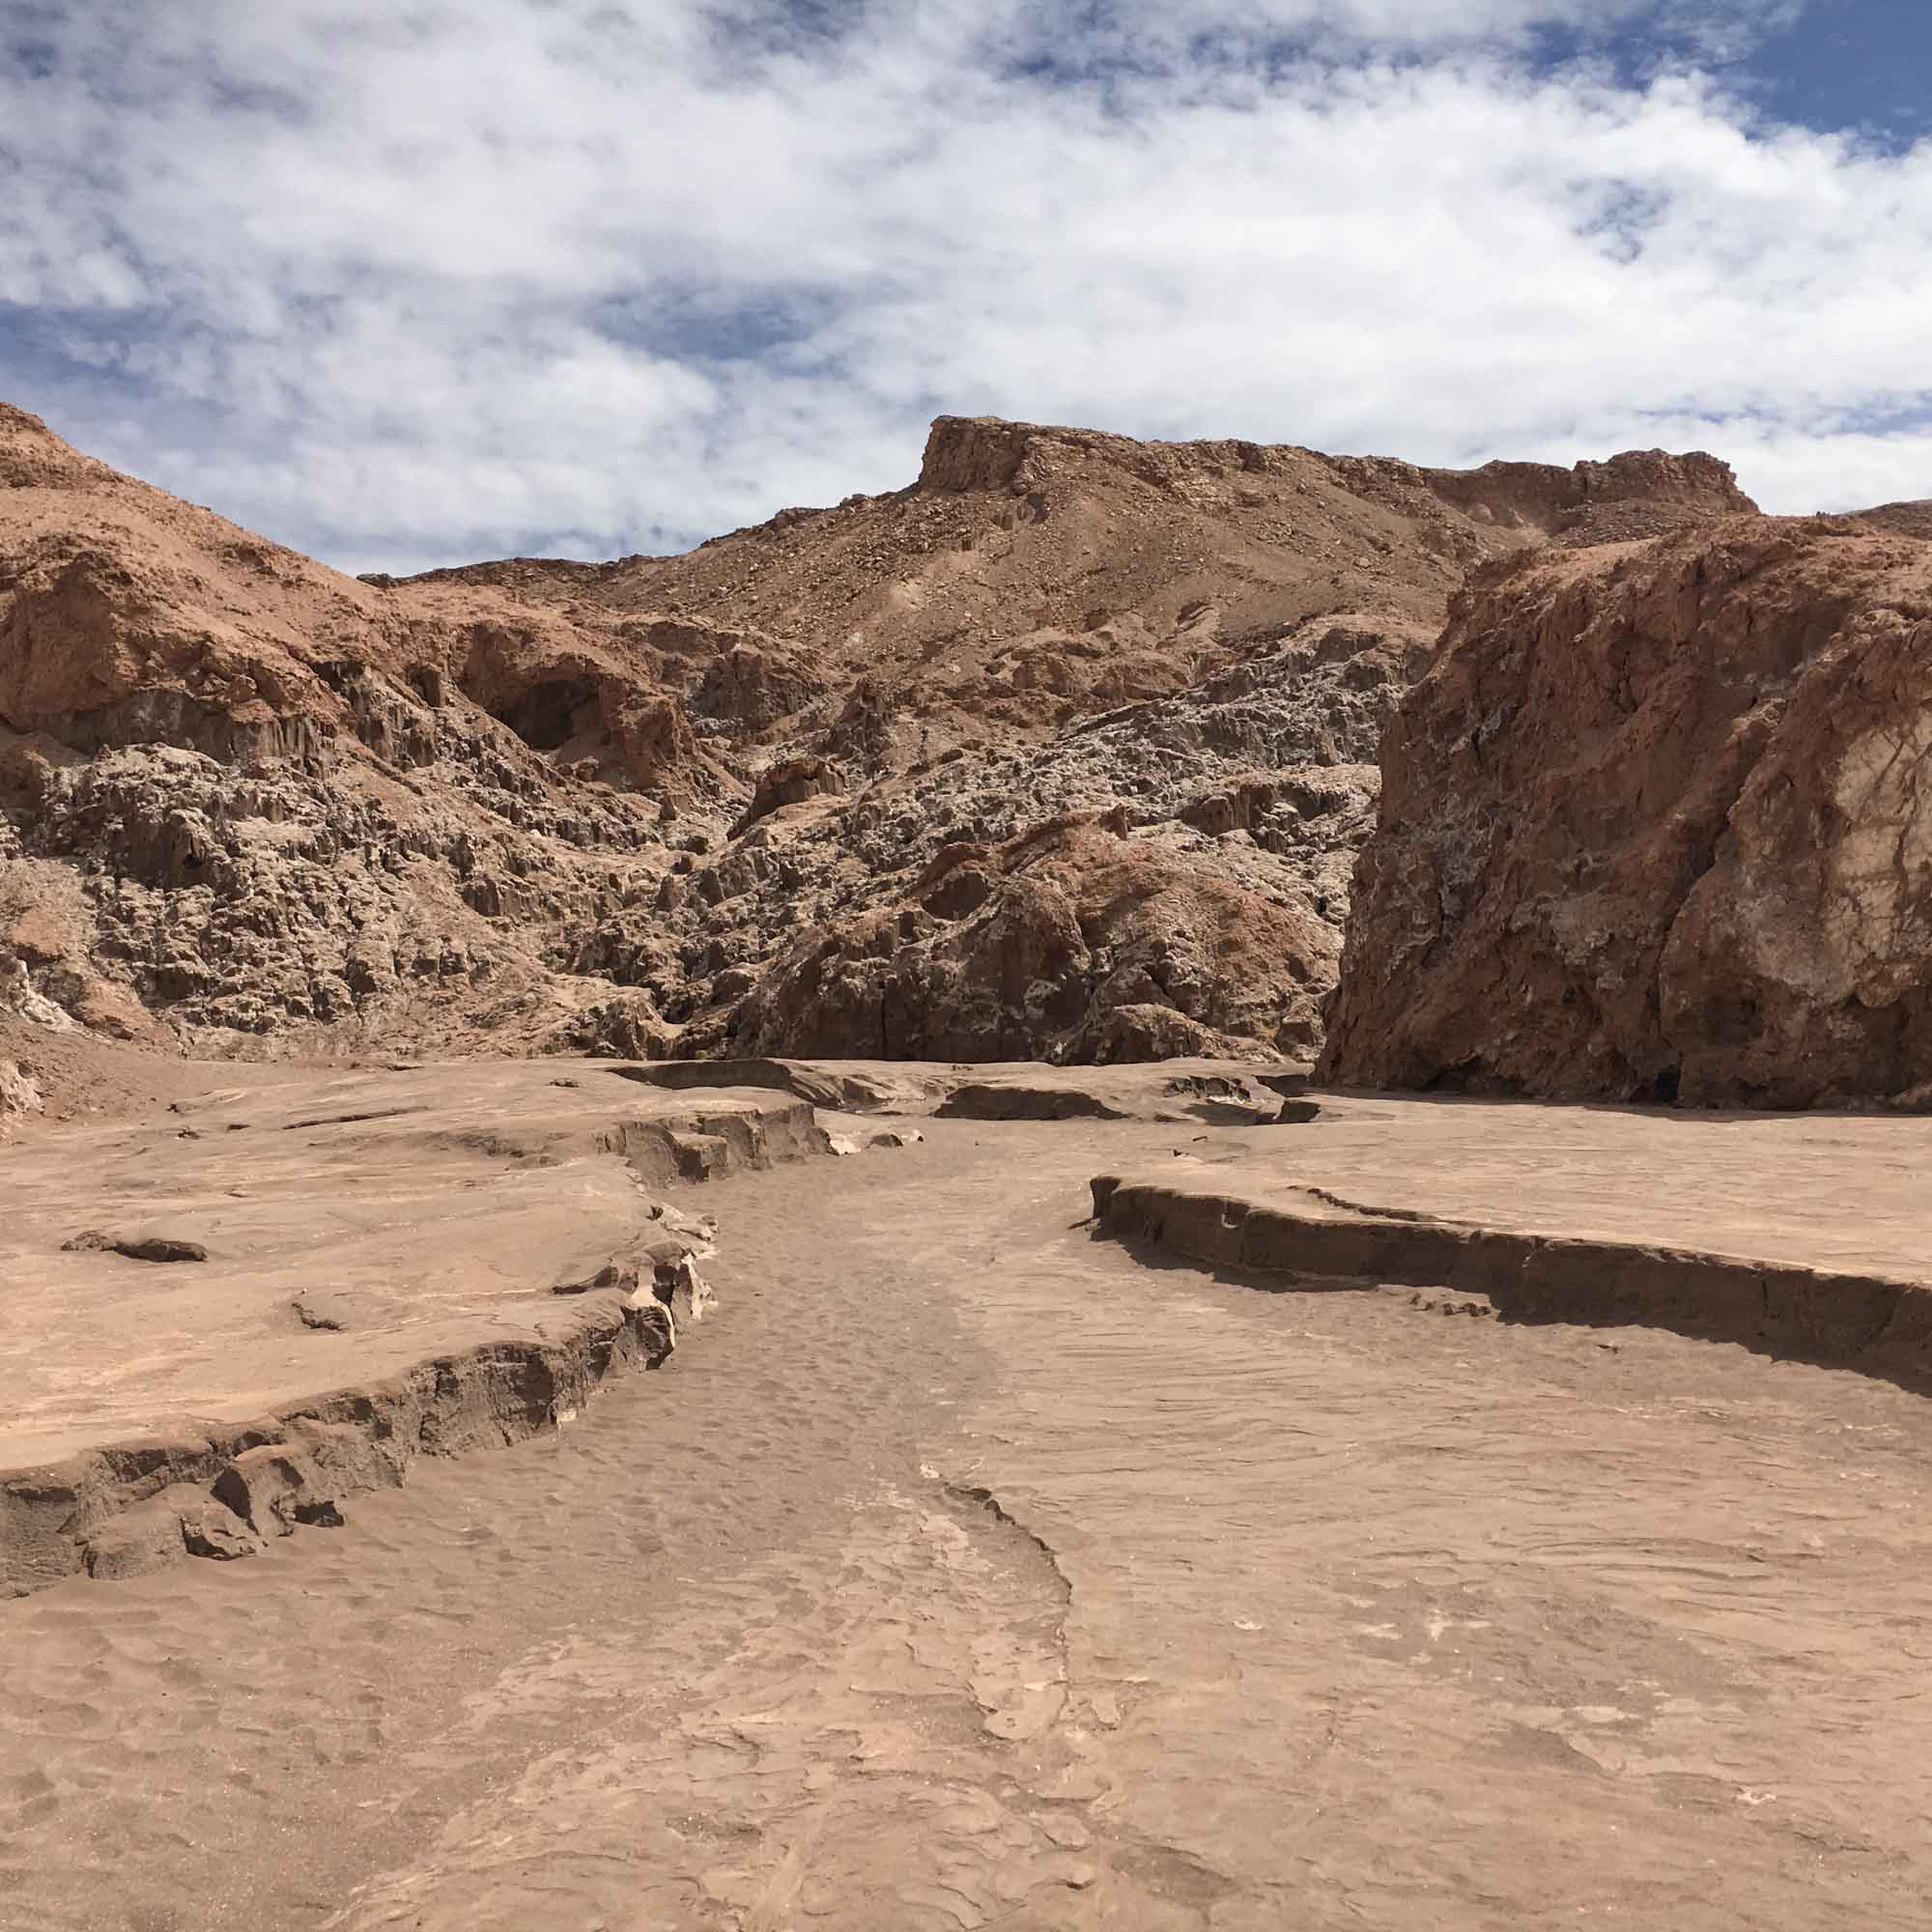 Cycling path to Valle de la Luna